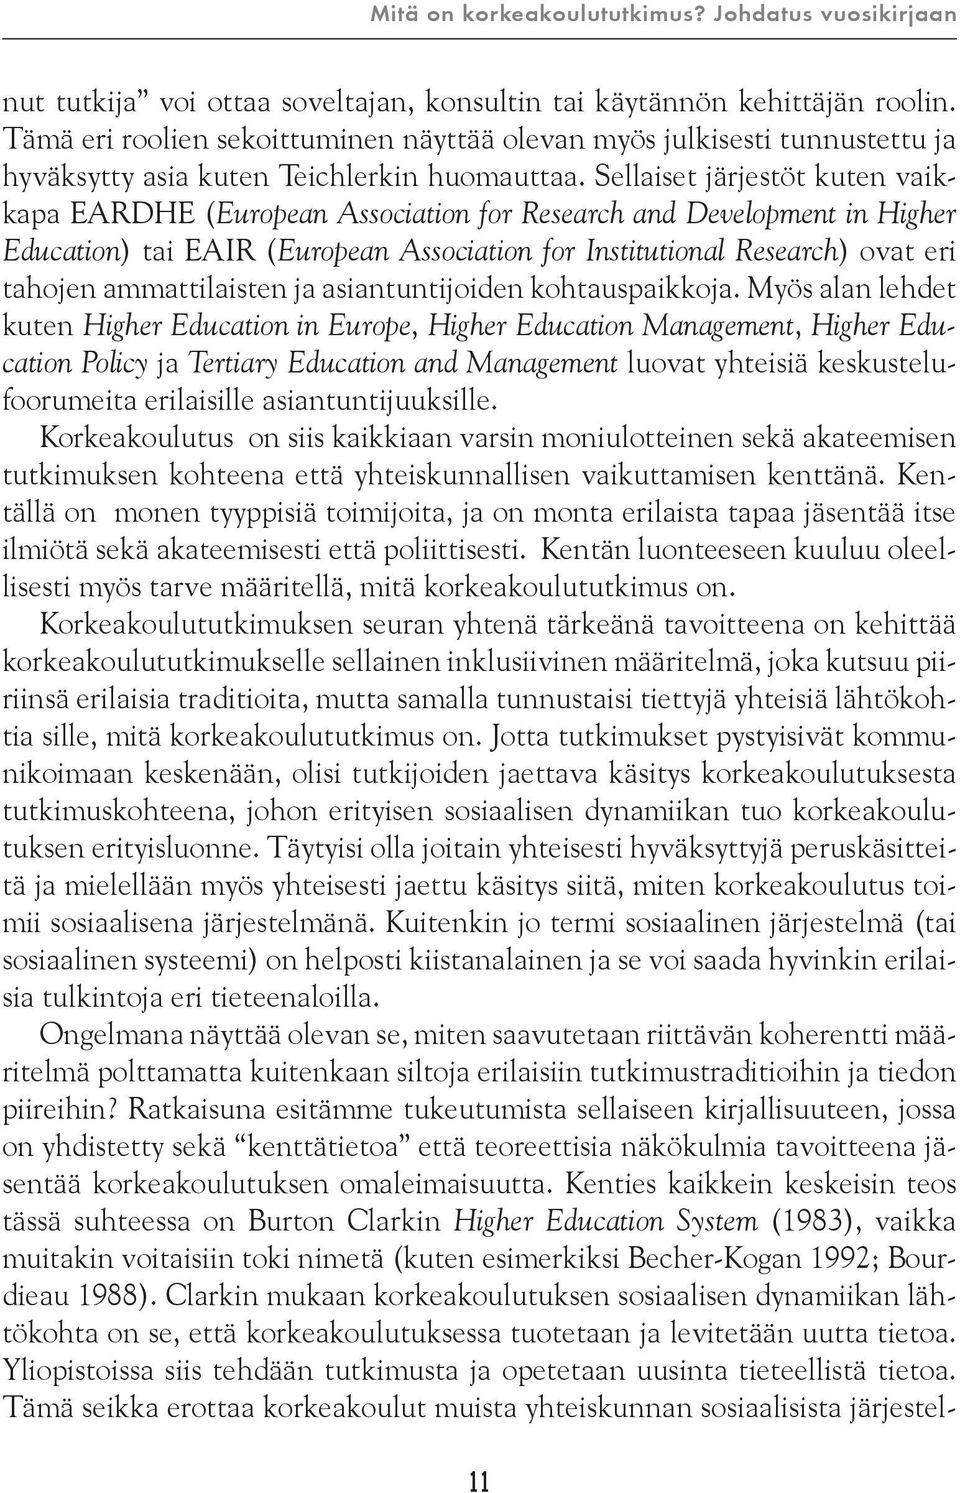 Sellaiset järjestöt kuten vaikkapa EARDHE (European Association for Research and Development in Higher Education) tai EAIR (European Association for Institutional Research) ovat eri tahojen